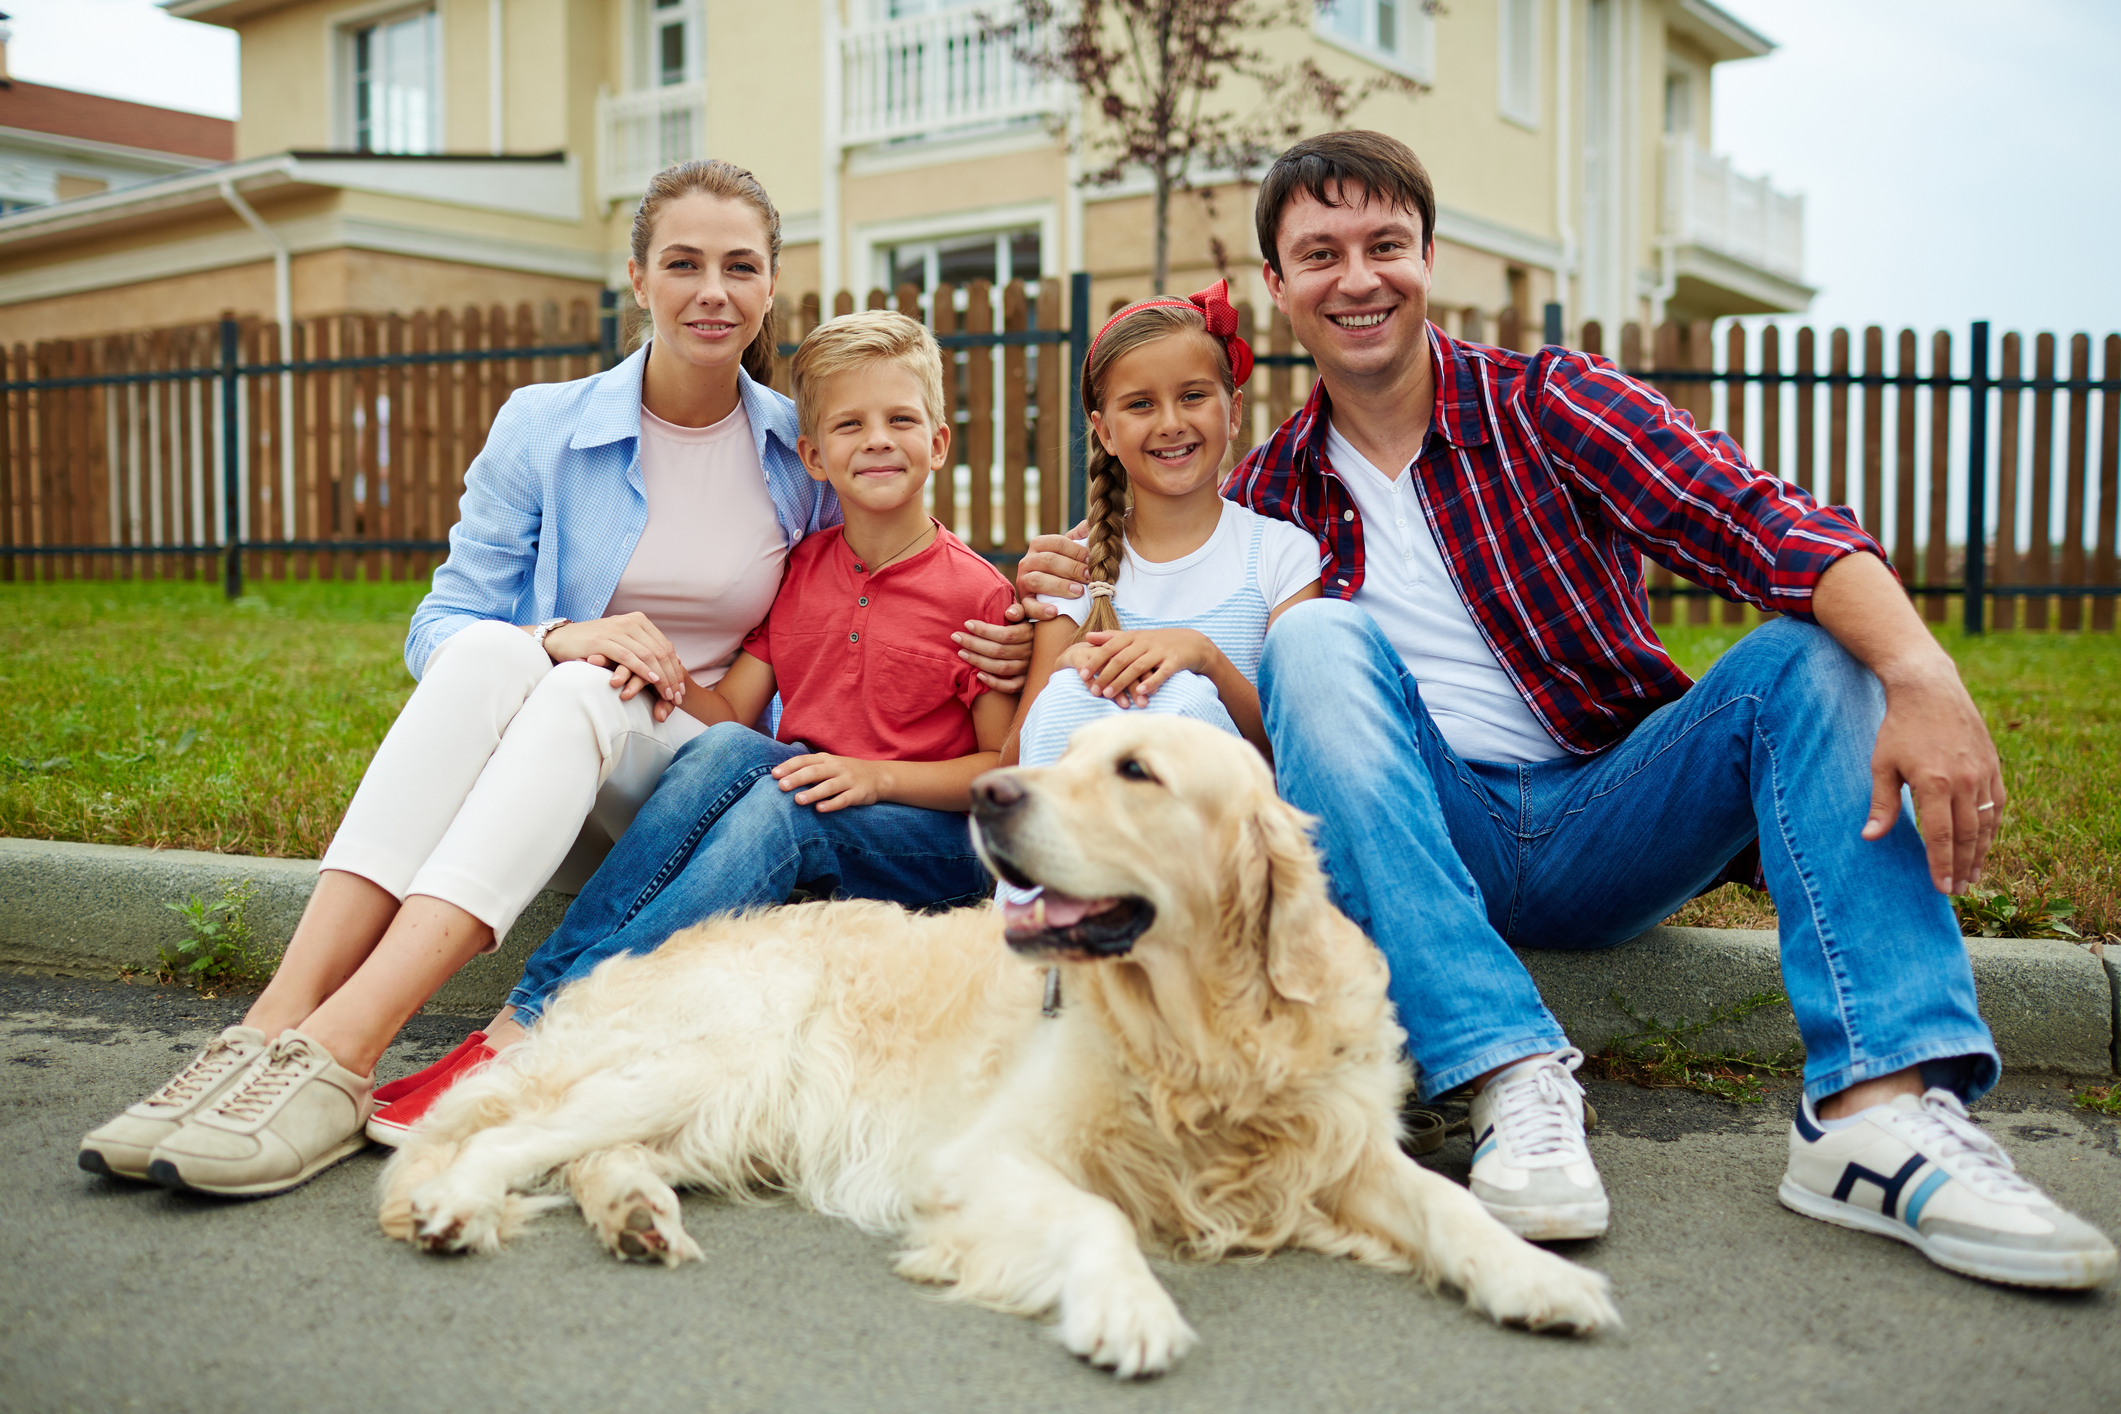 How to Be the Best New Dog Parent - Hill's Pet Nutrition 2017-04-19 13:56